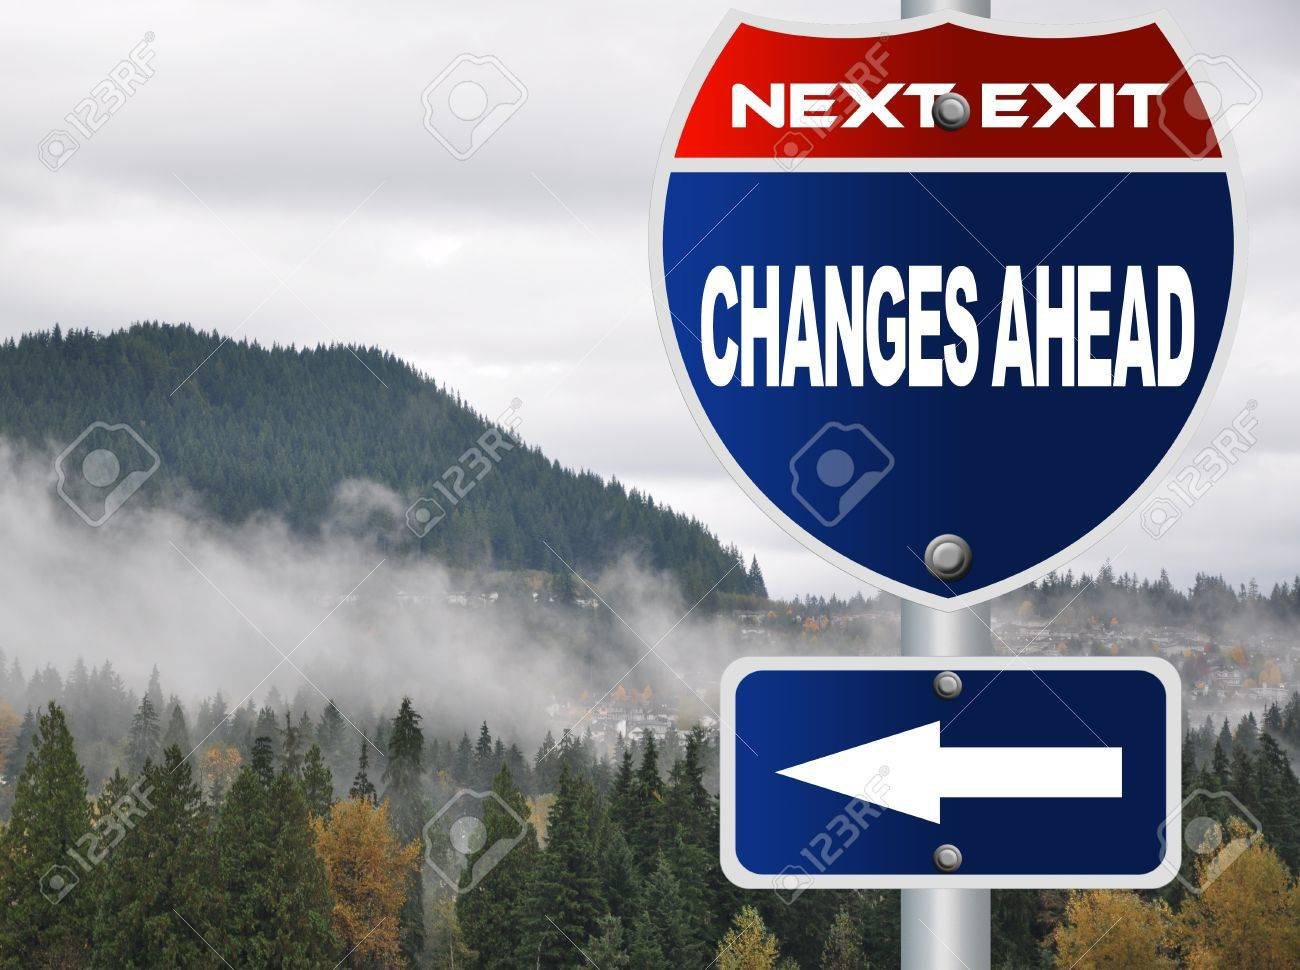 Changes ahead road sign Stock Photo - 16278286